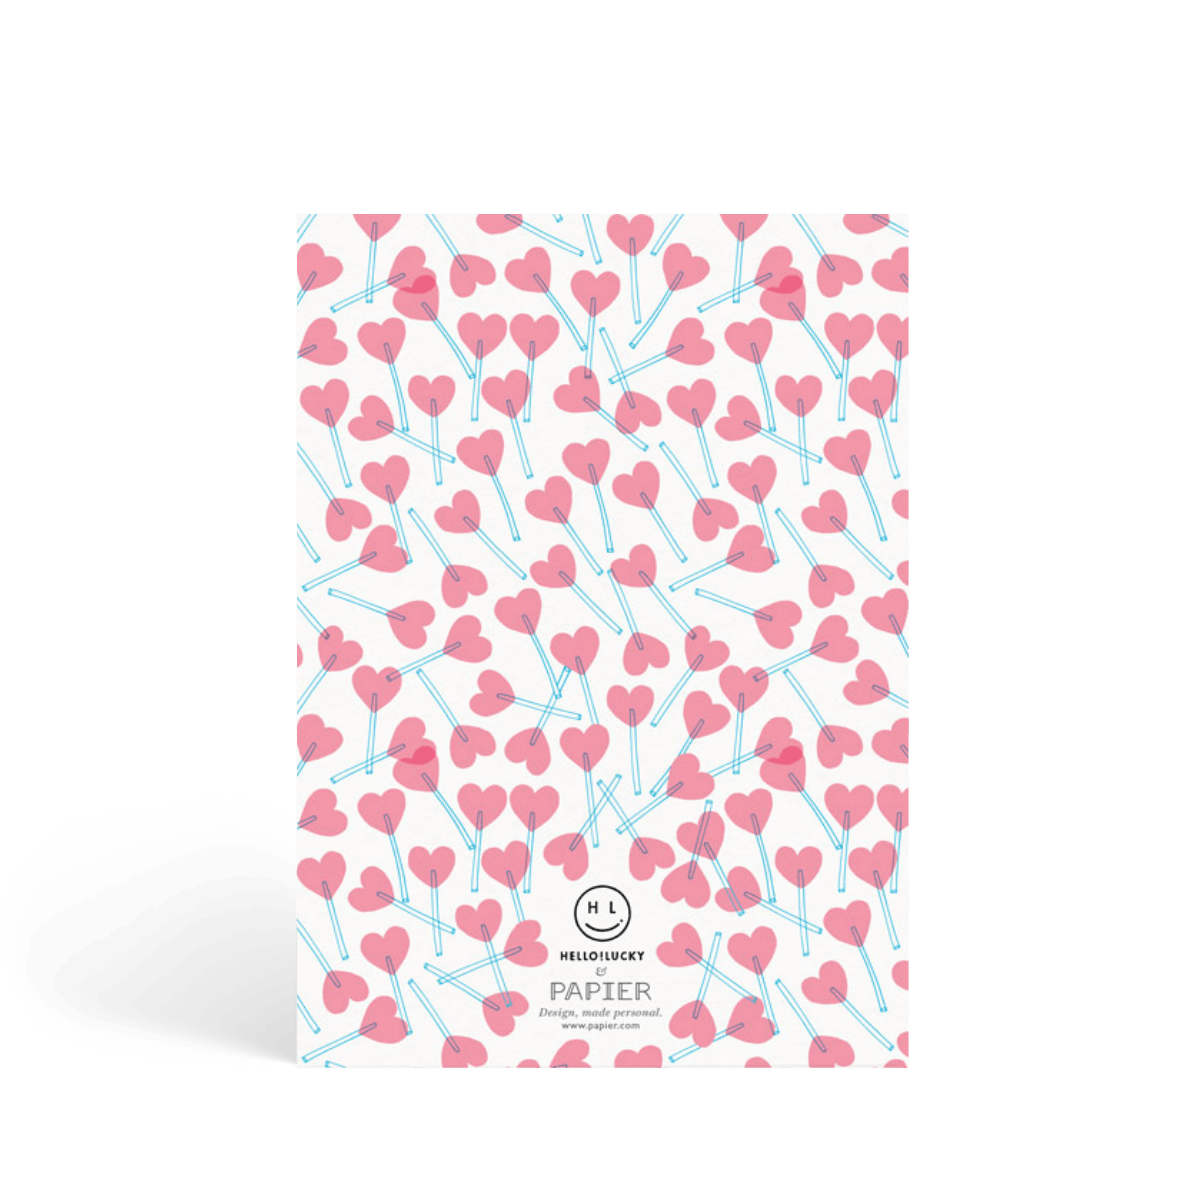 Https%3a%2f%2fwww.papier.com%2fproduct image%2f56471%2f5%2fheart lollies 13564 back 1570133634.png?ixlib=rb 1.1